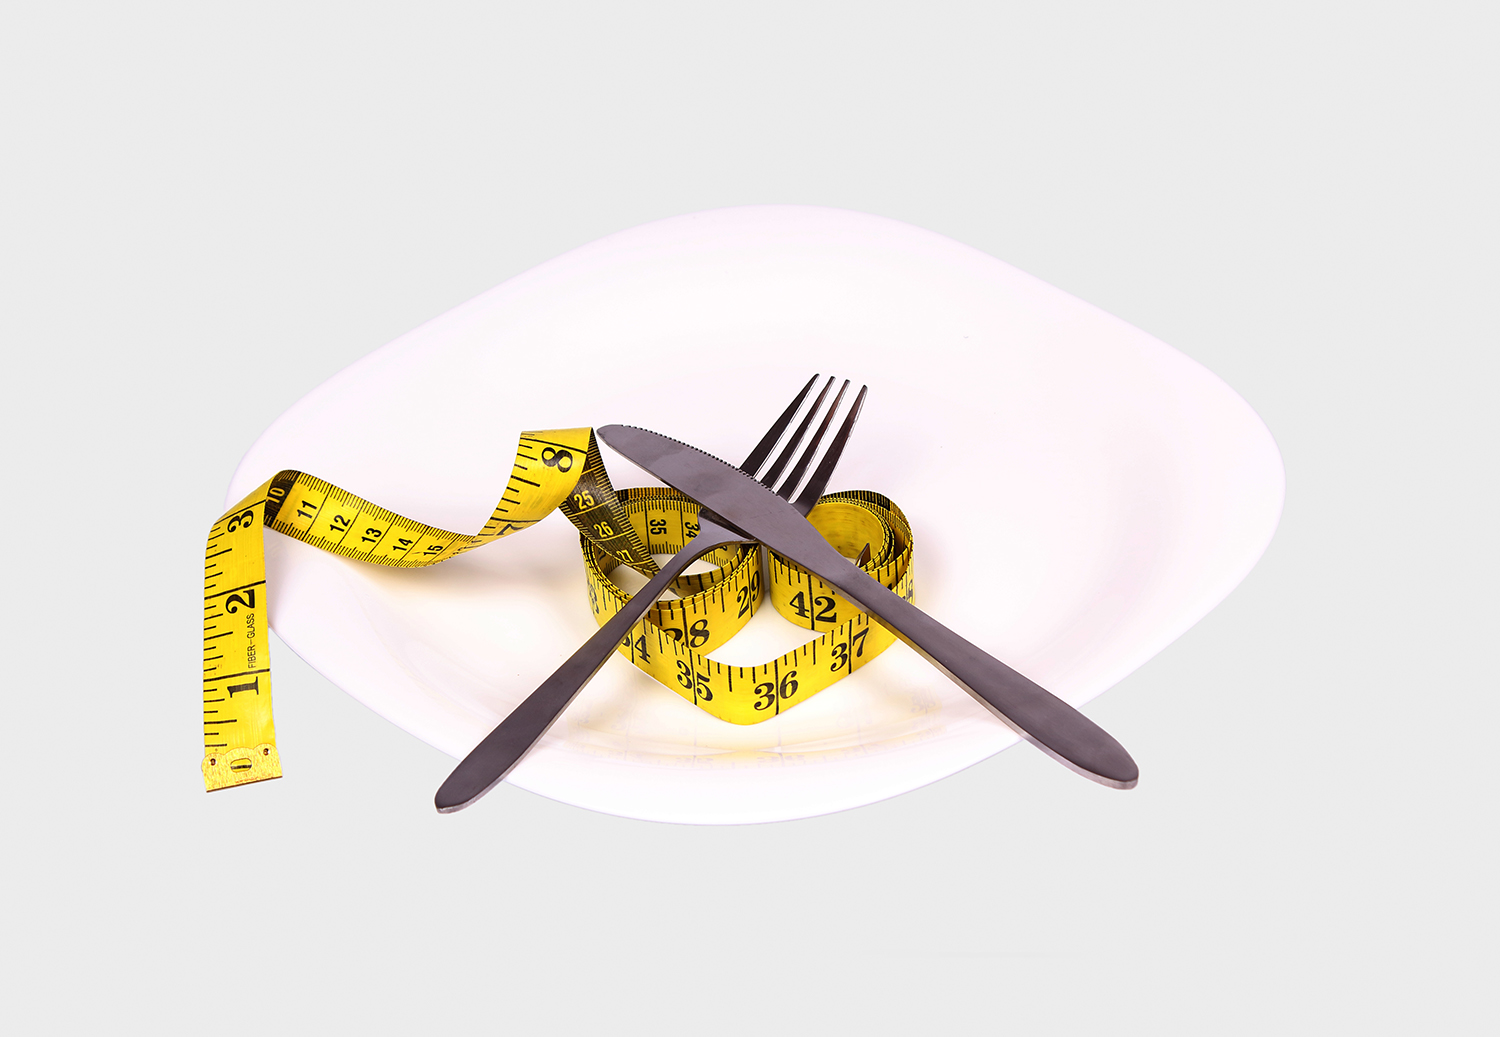 Plate spoon folk and tape measure dieting concept